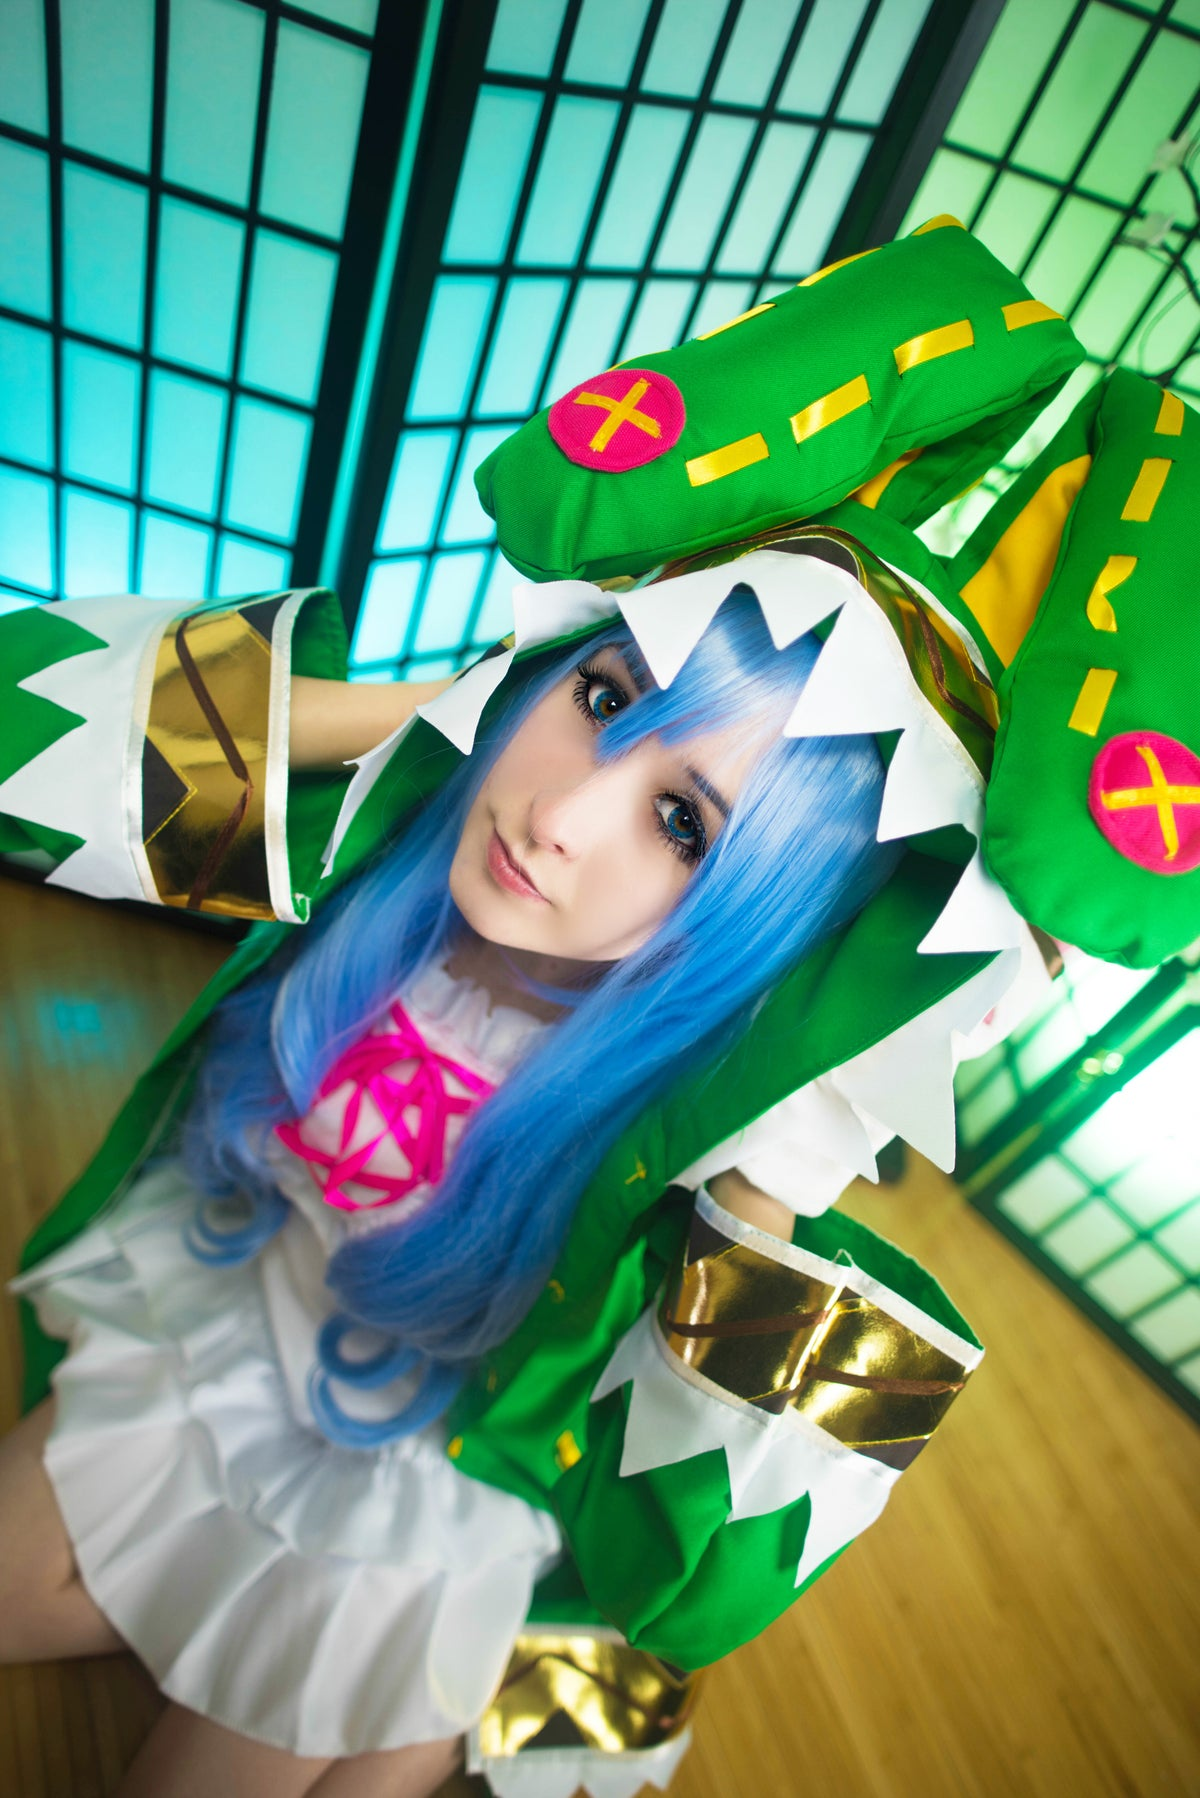 Image of Yoshino Photoset